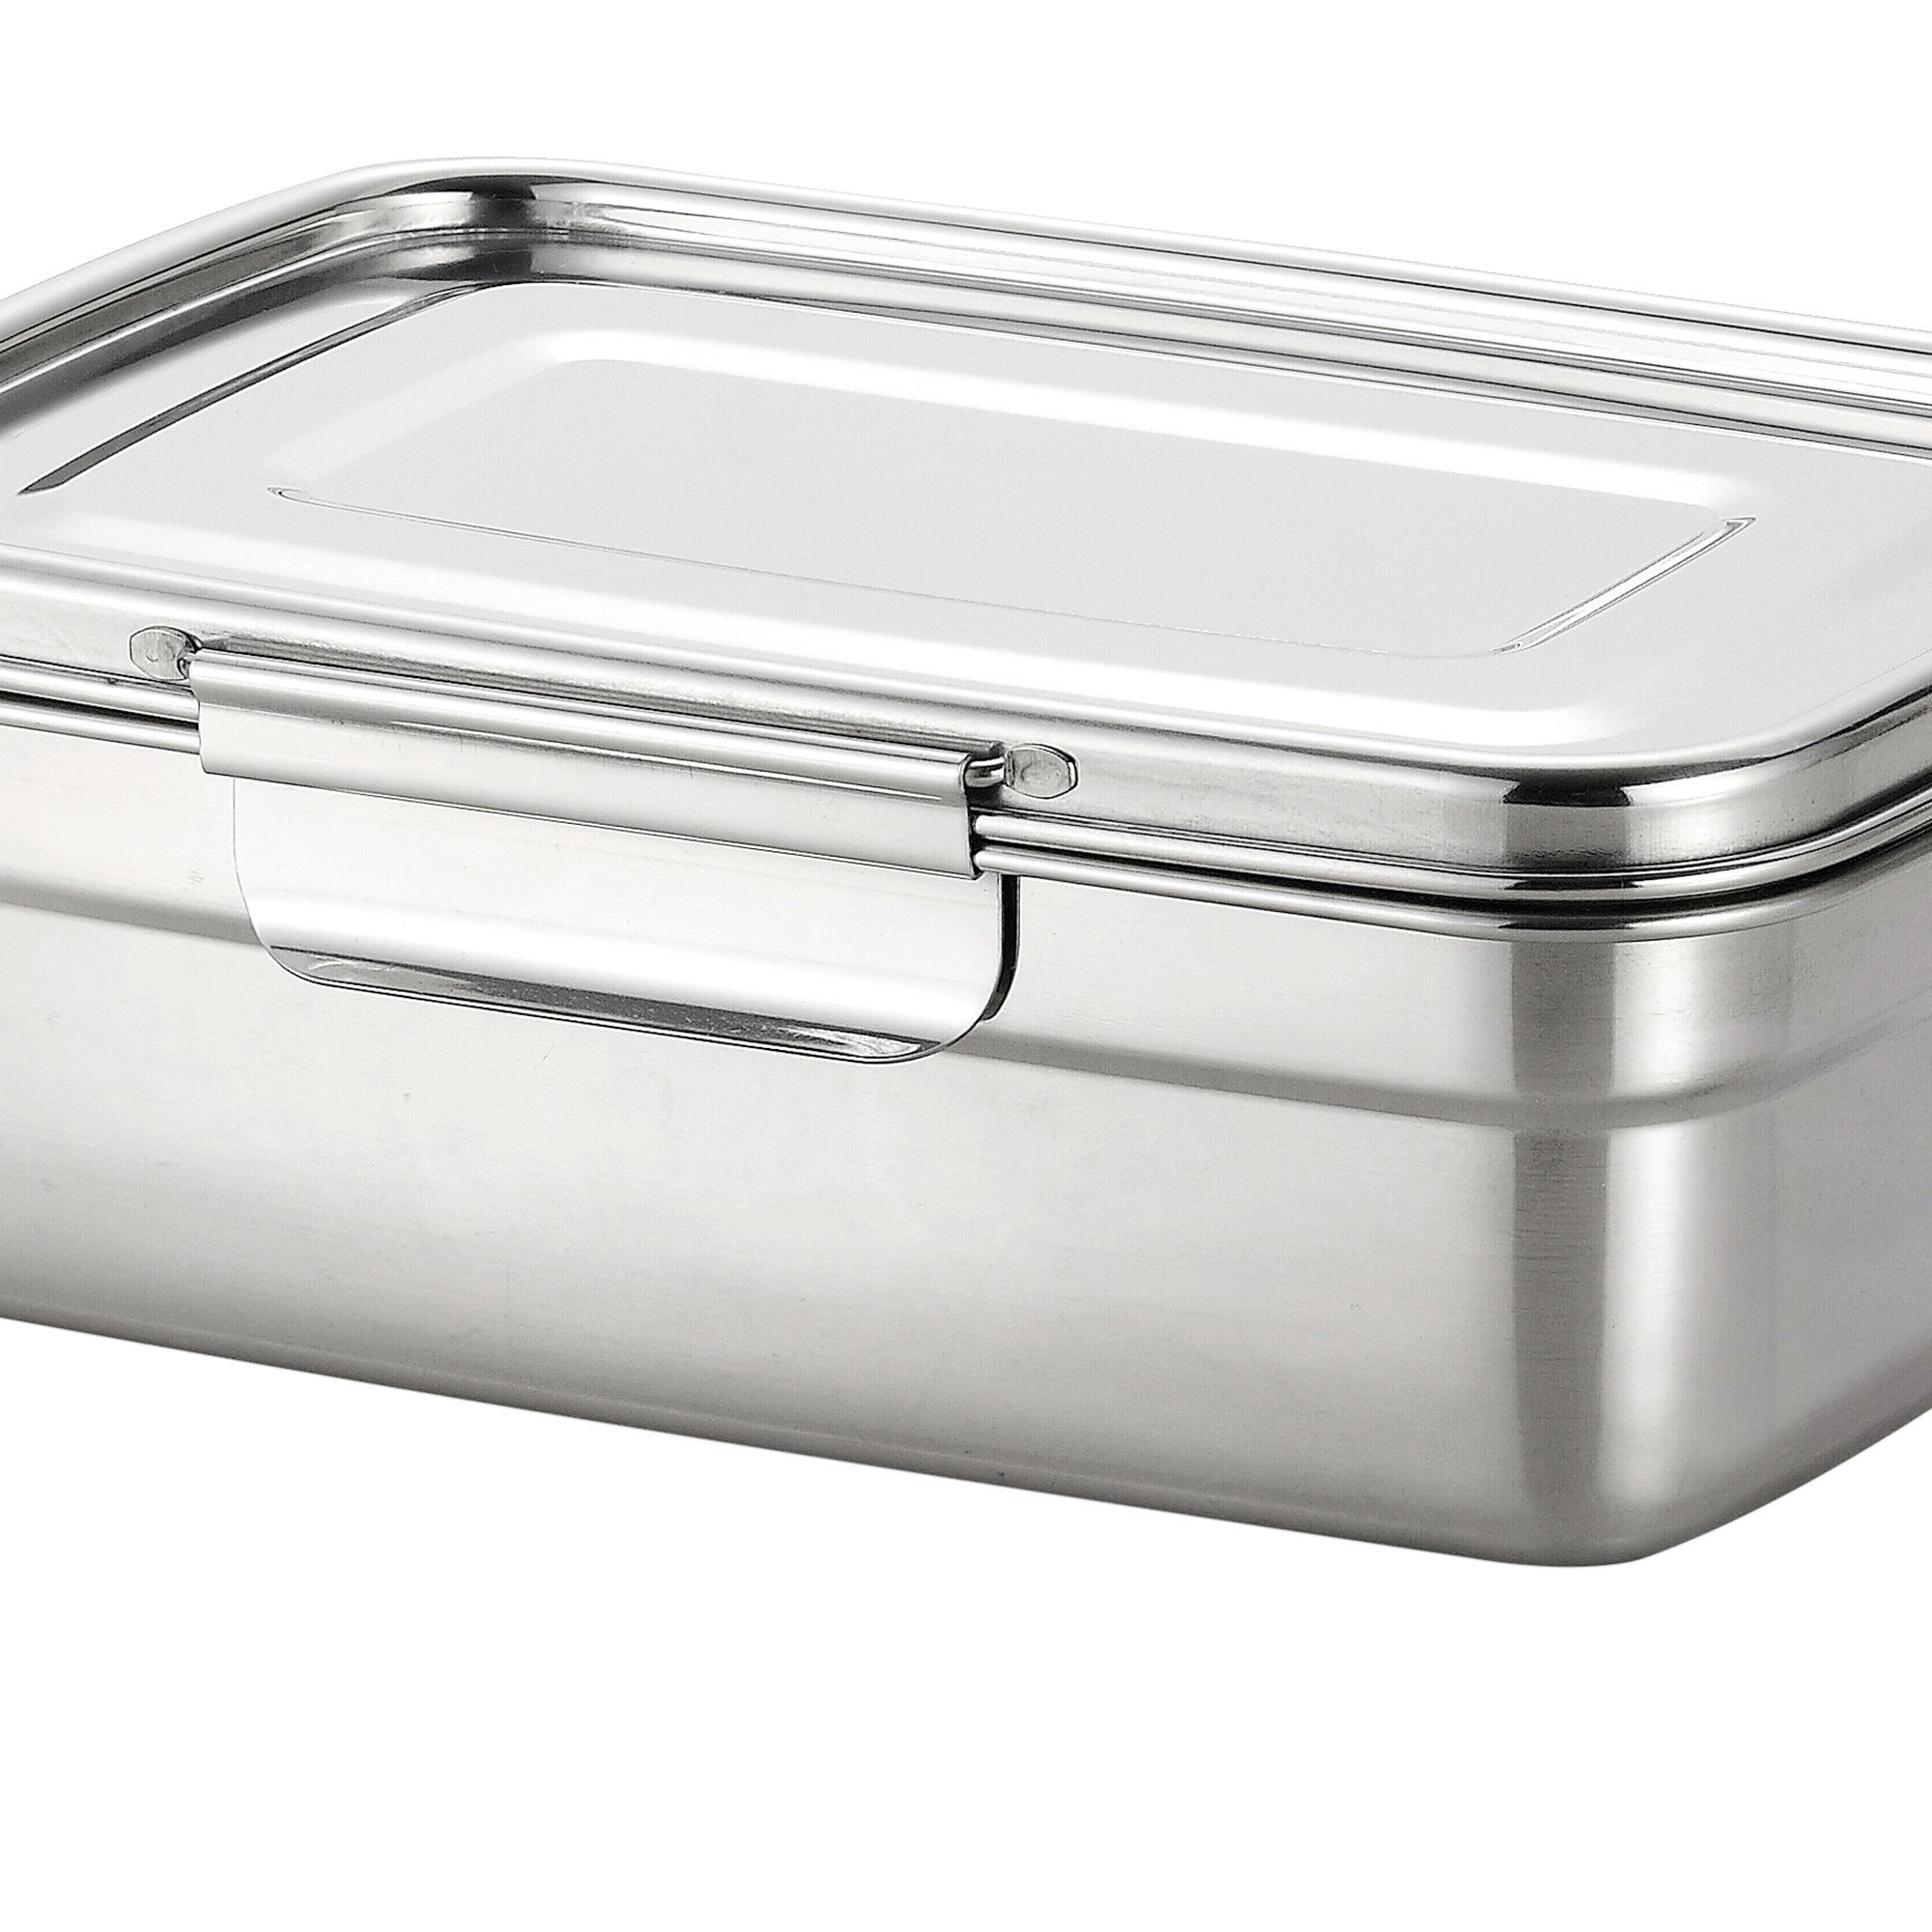 Avanti Dry Cell Stainless Steel Food Container 2.6L image #2